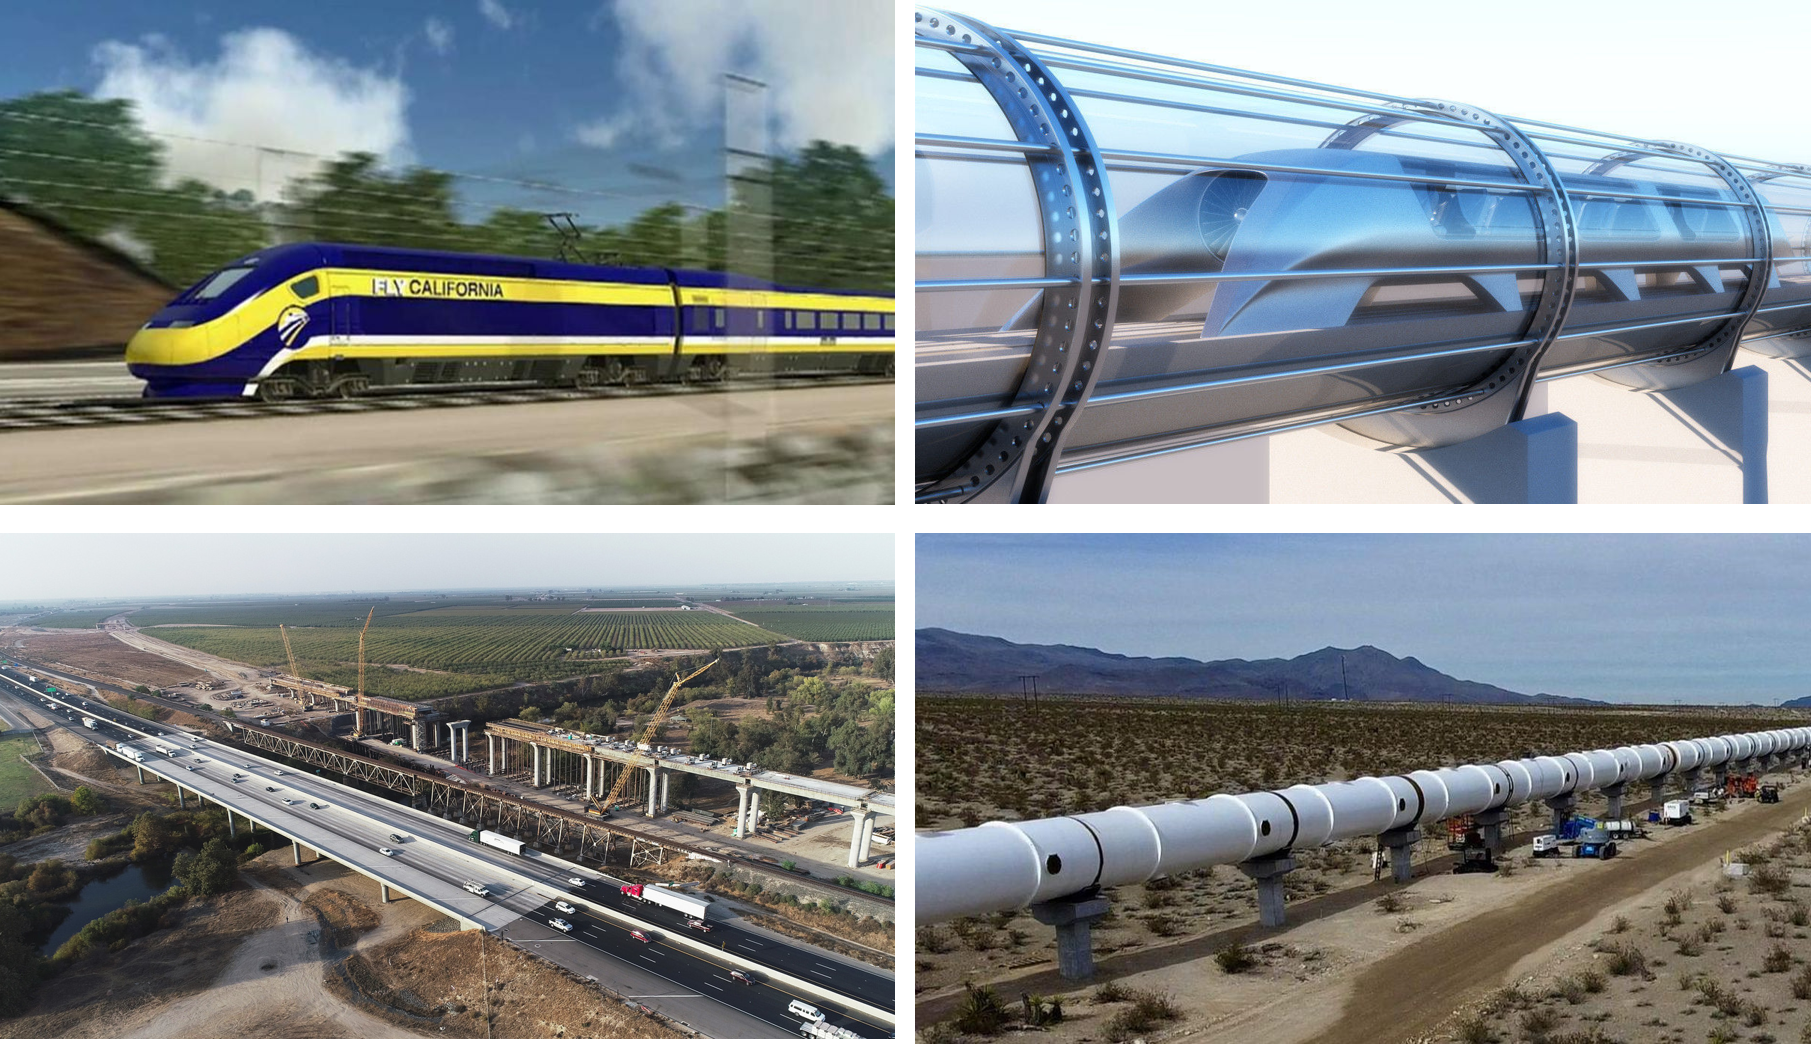 IT'S NOT THE TECHNOLOGY, STUPID Elon Musk and his team at Hyperloop (the technology of which is at least 200 years old) don't get that the challenges of a transportation system are less technological then they are societal, governmental and political. The challenges facing the bullet train aren't flawed technology, but rather logistical having mostly to do with property ownership and civil engineering.